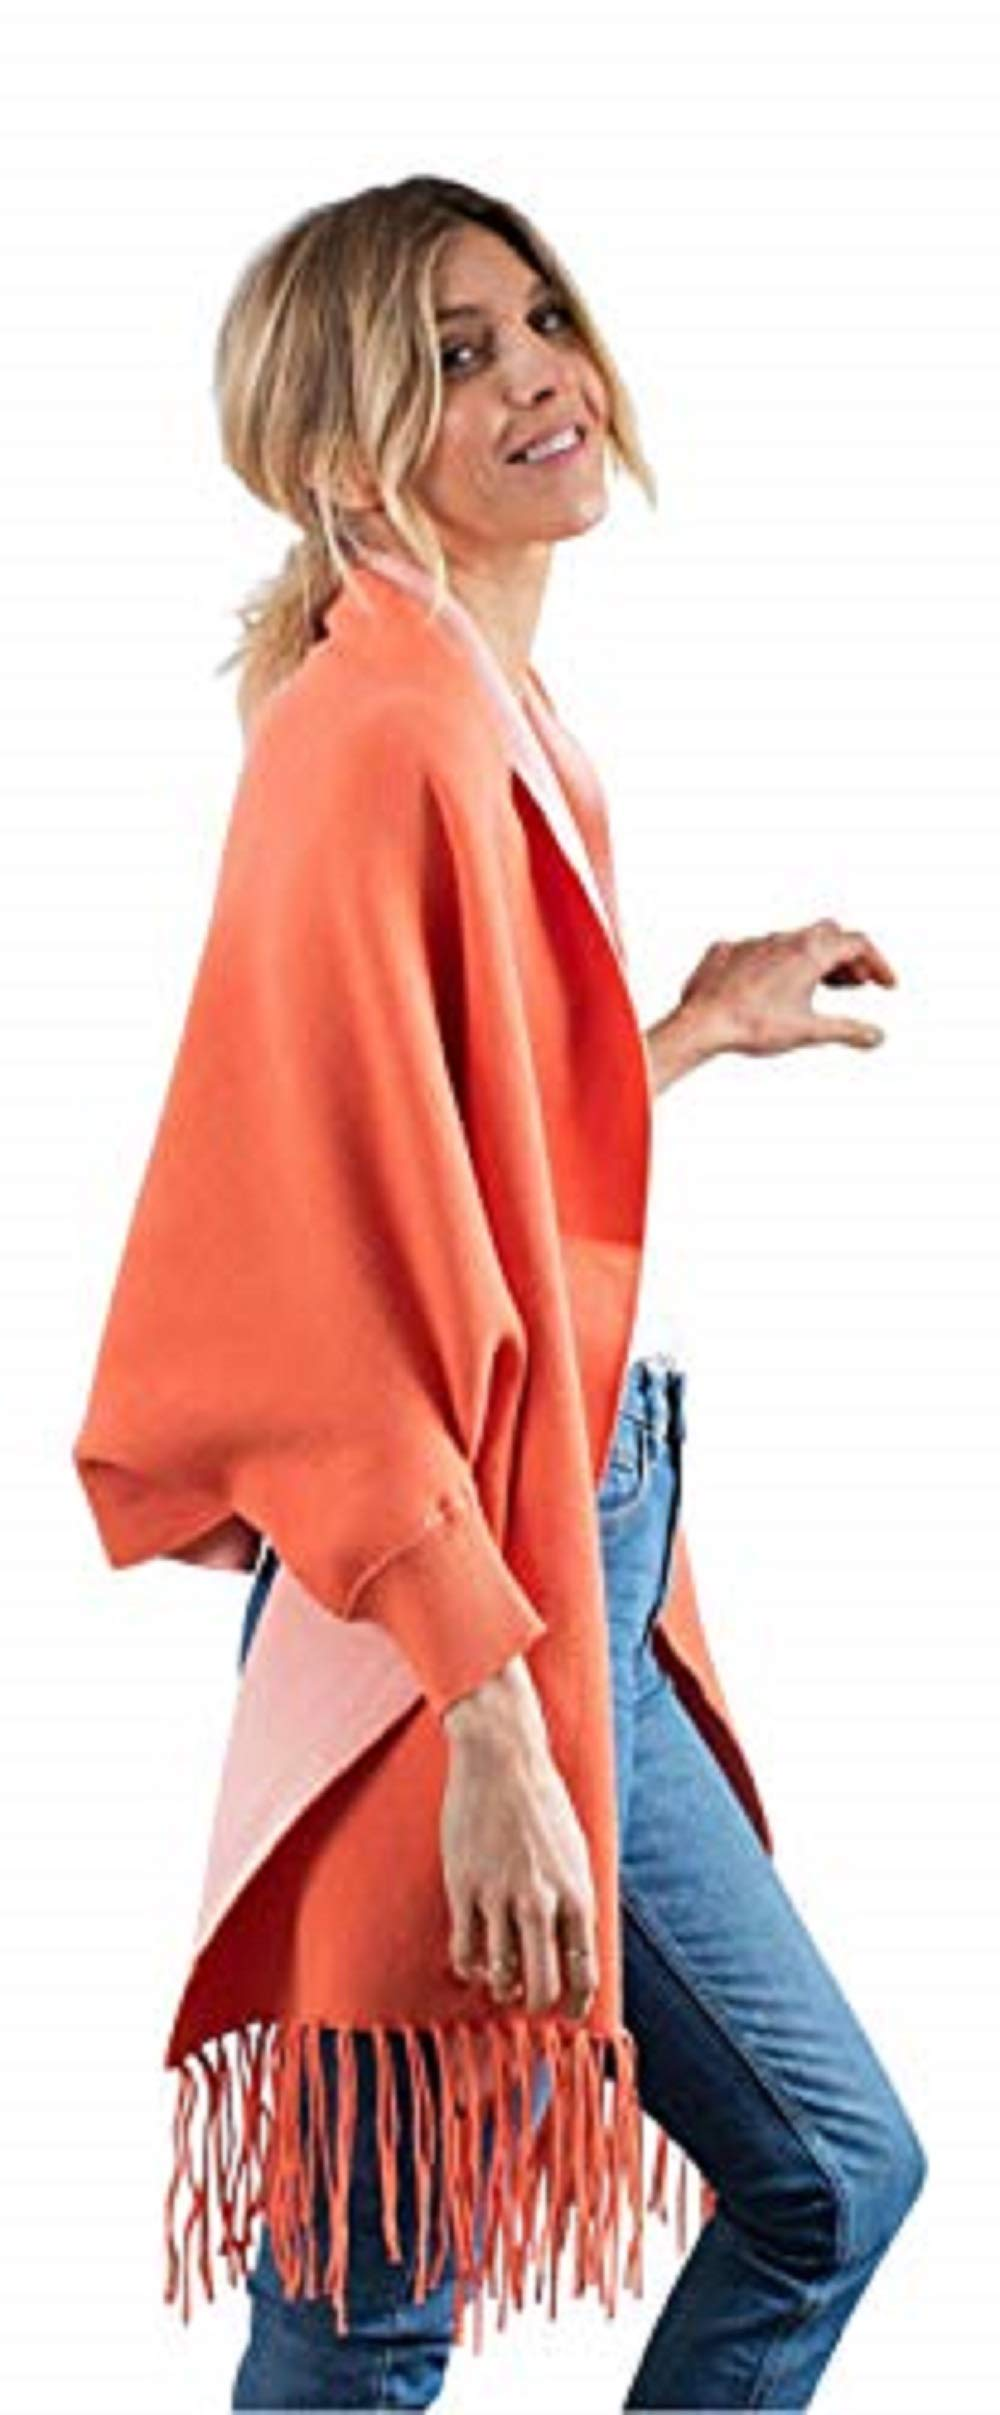 Women's Reversible Wrap-2 colors in one great look -Super-soft & Cozy- Wrap-Scarf-Subtle sleeves -80% cotton, 20% polyester-Washer & Dryer Safe-Available in Multiple Colors (Coral)